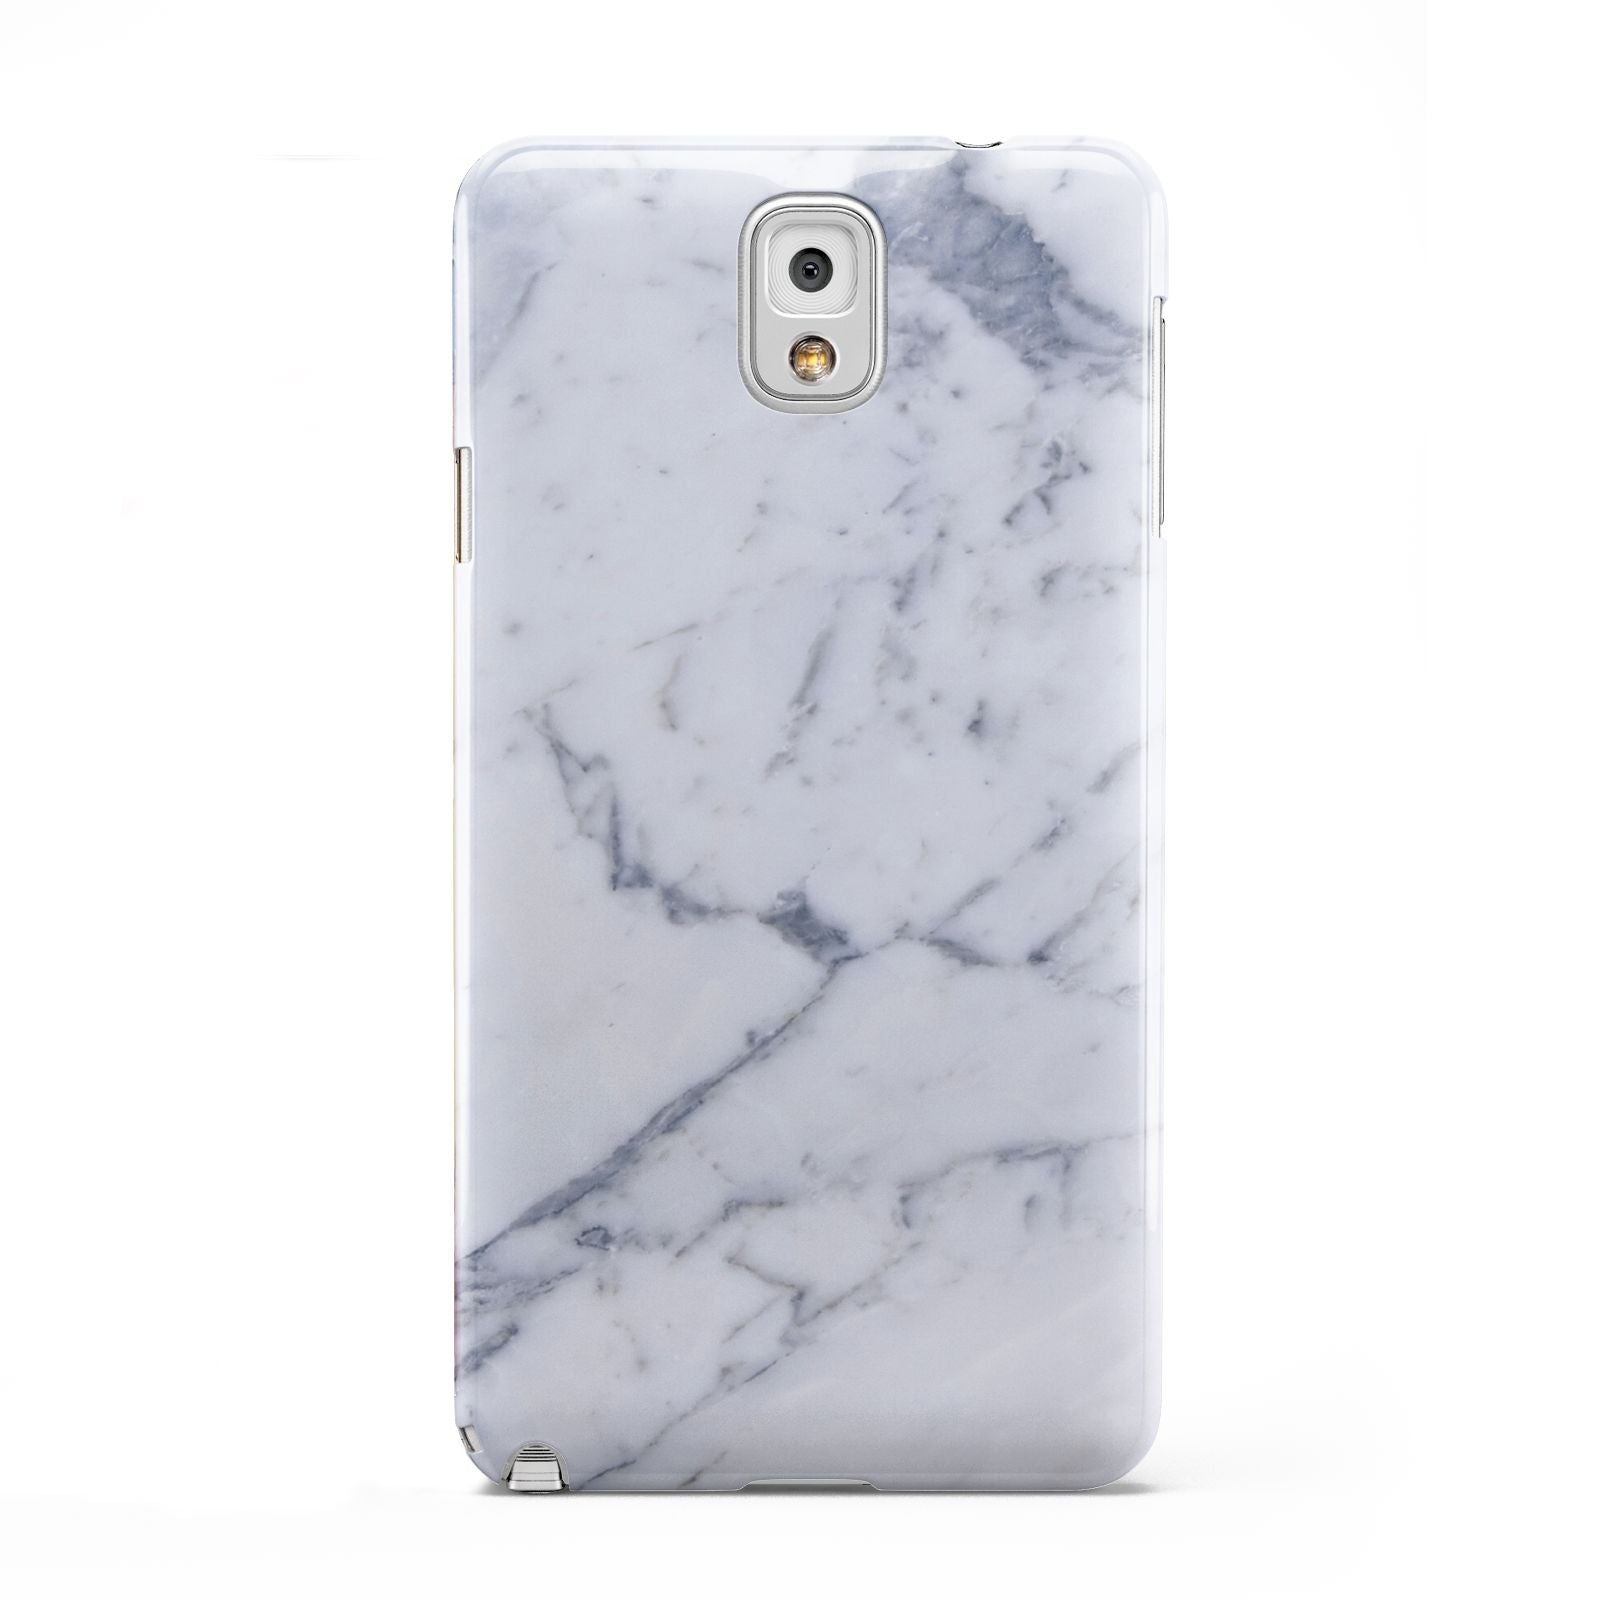 Faux Marble Grey White Samsung Galaxy Note 3 Case